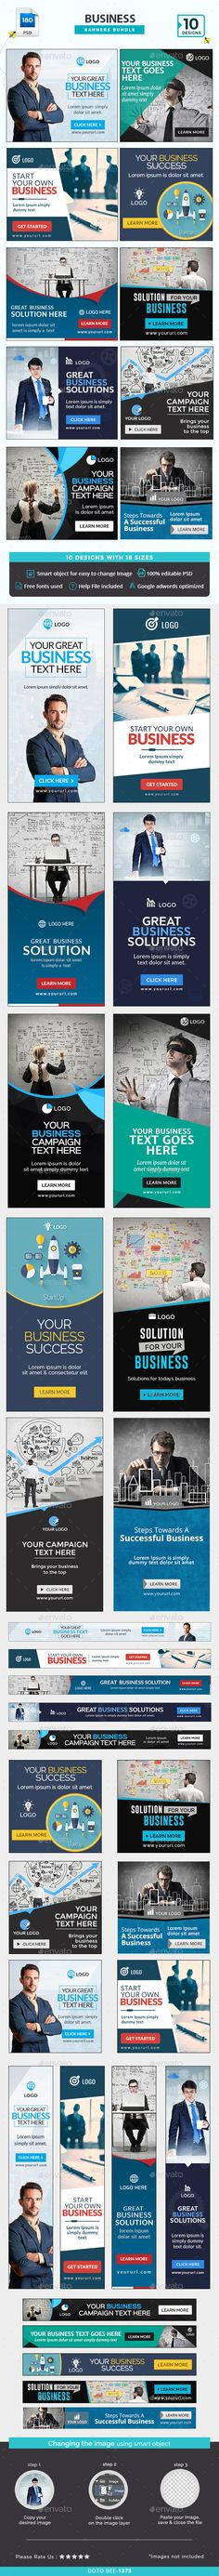 Business Banners Bundle - 10 Sets - 180 Banners Templates PSD. Download here: http://graphicriver.net/item/business-banners-bundle-10-sets-180-banners/16076171?ref=ksioks